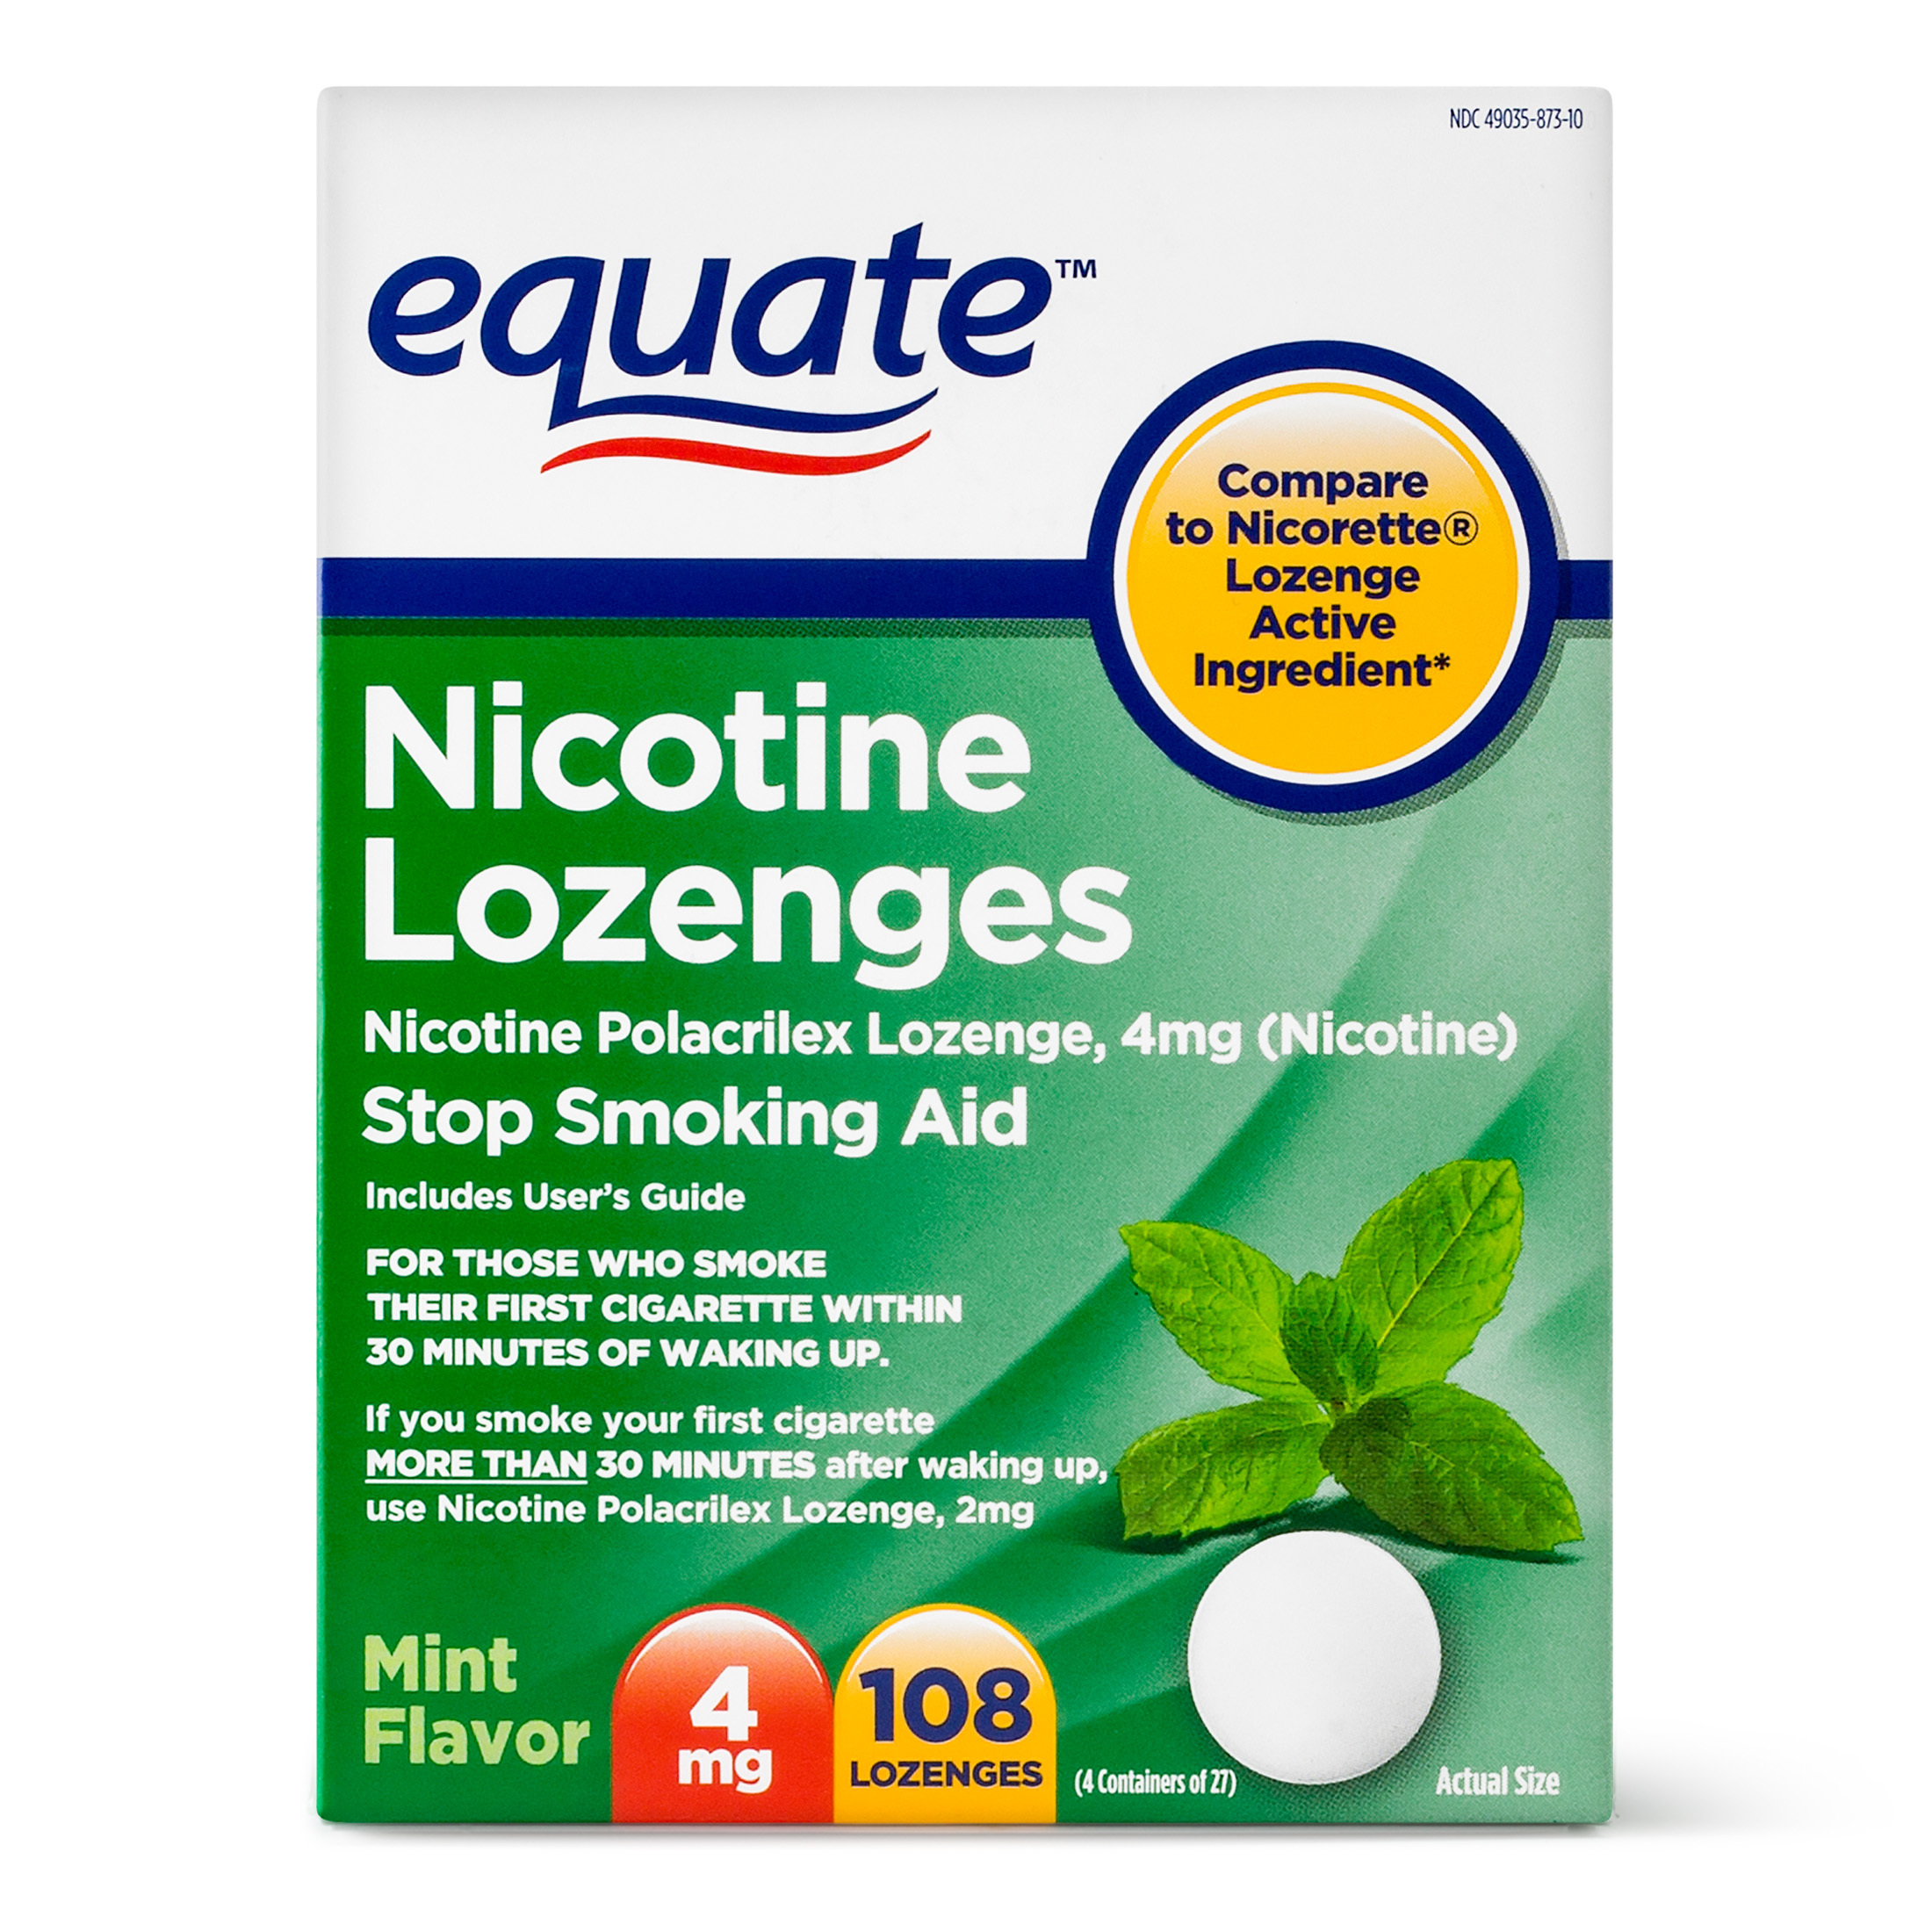 Equate Nicotine Lozenges Stop Smoking Aid Mint Flavor, 4 mg, 108 Ct